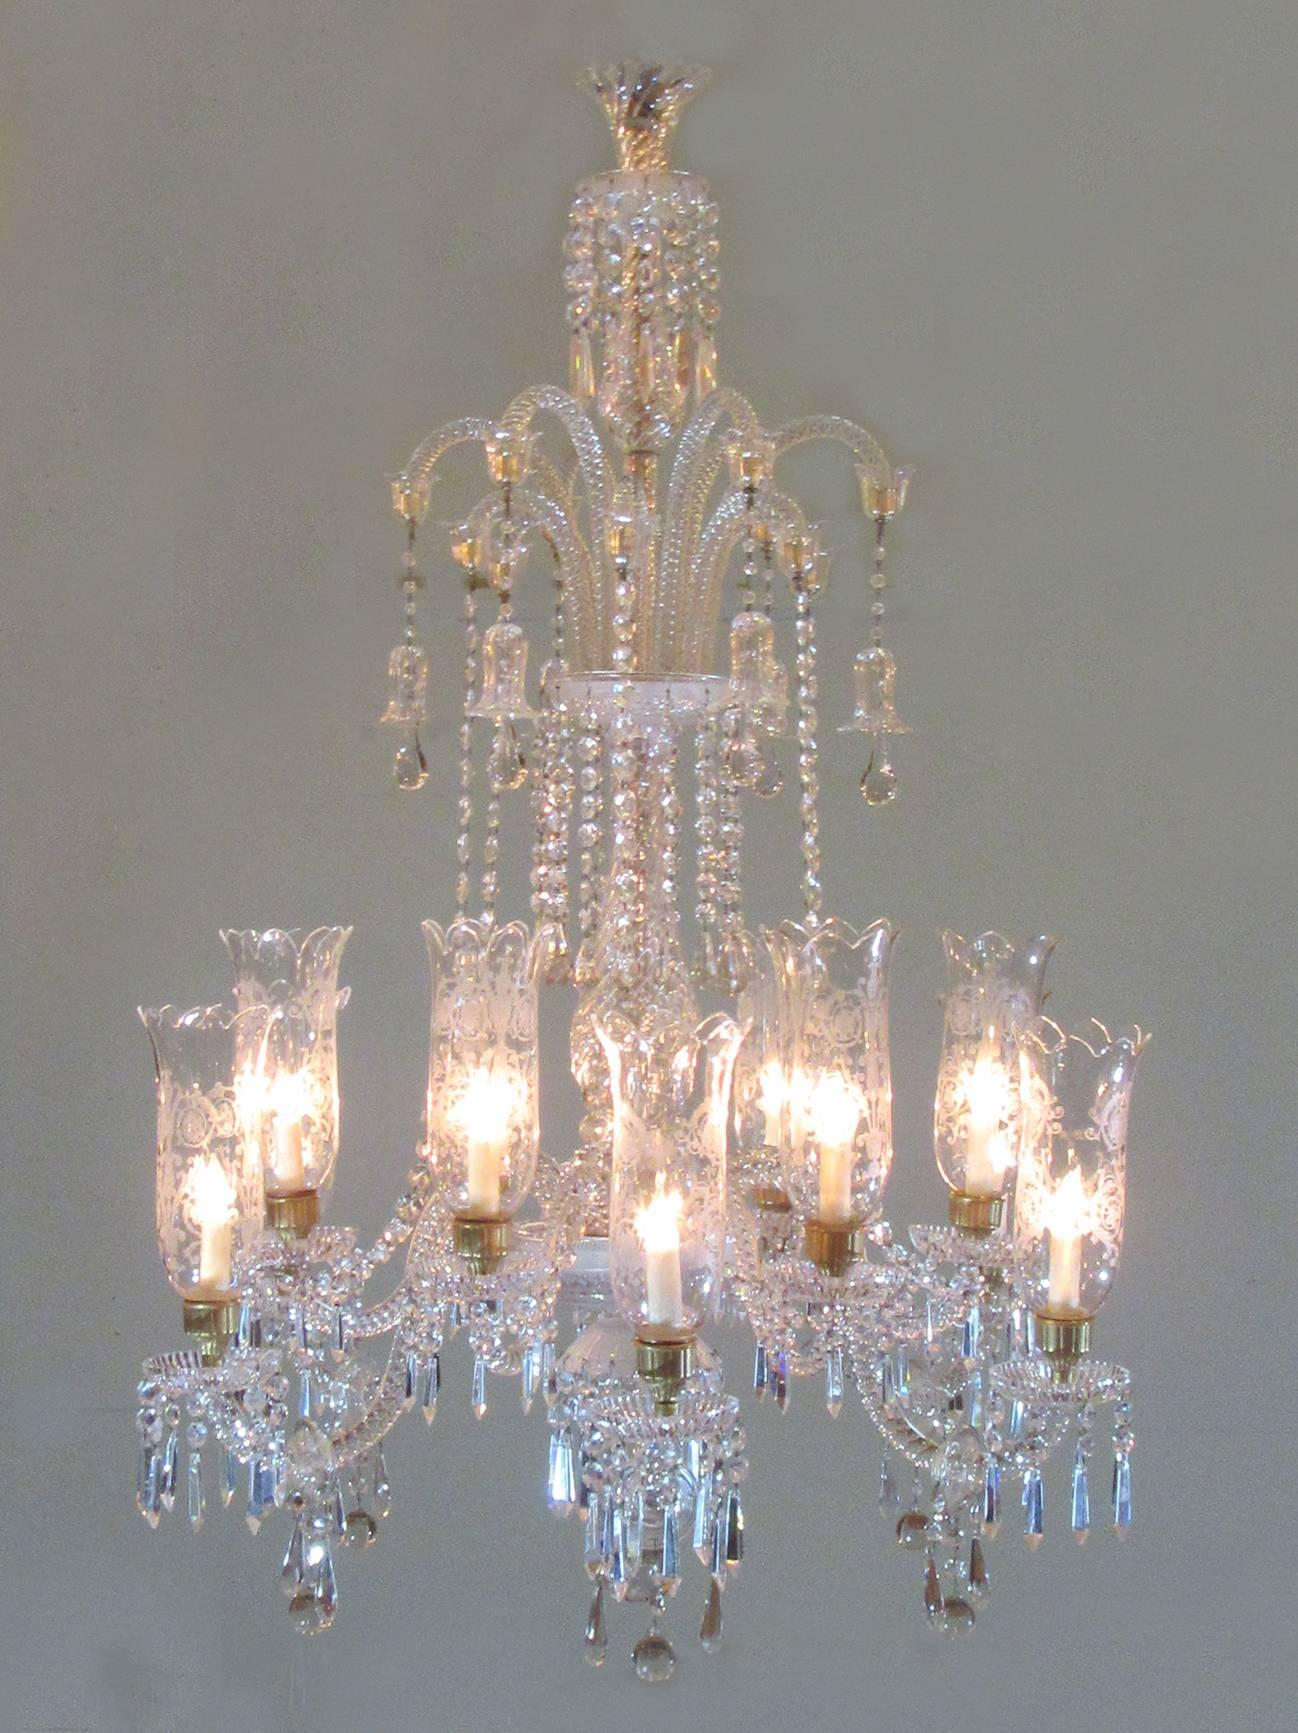 Monumental 19th century french baccarat crystal chandelier with monumental 19th century french baccarat crystal chandelier with hurricanes at 1stdibs aloadofball Image collections